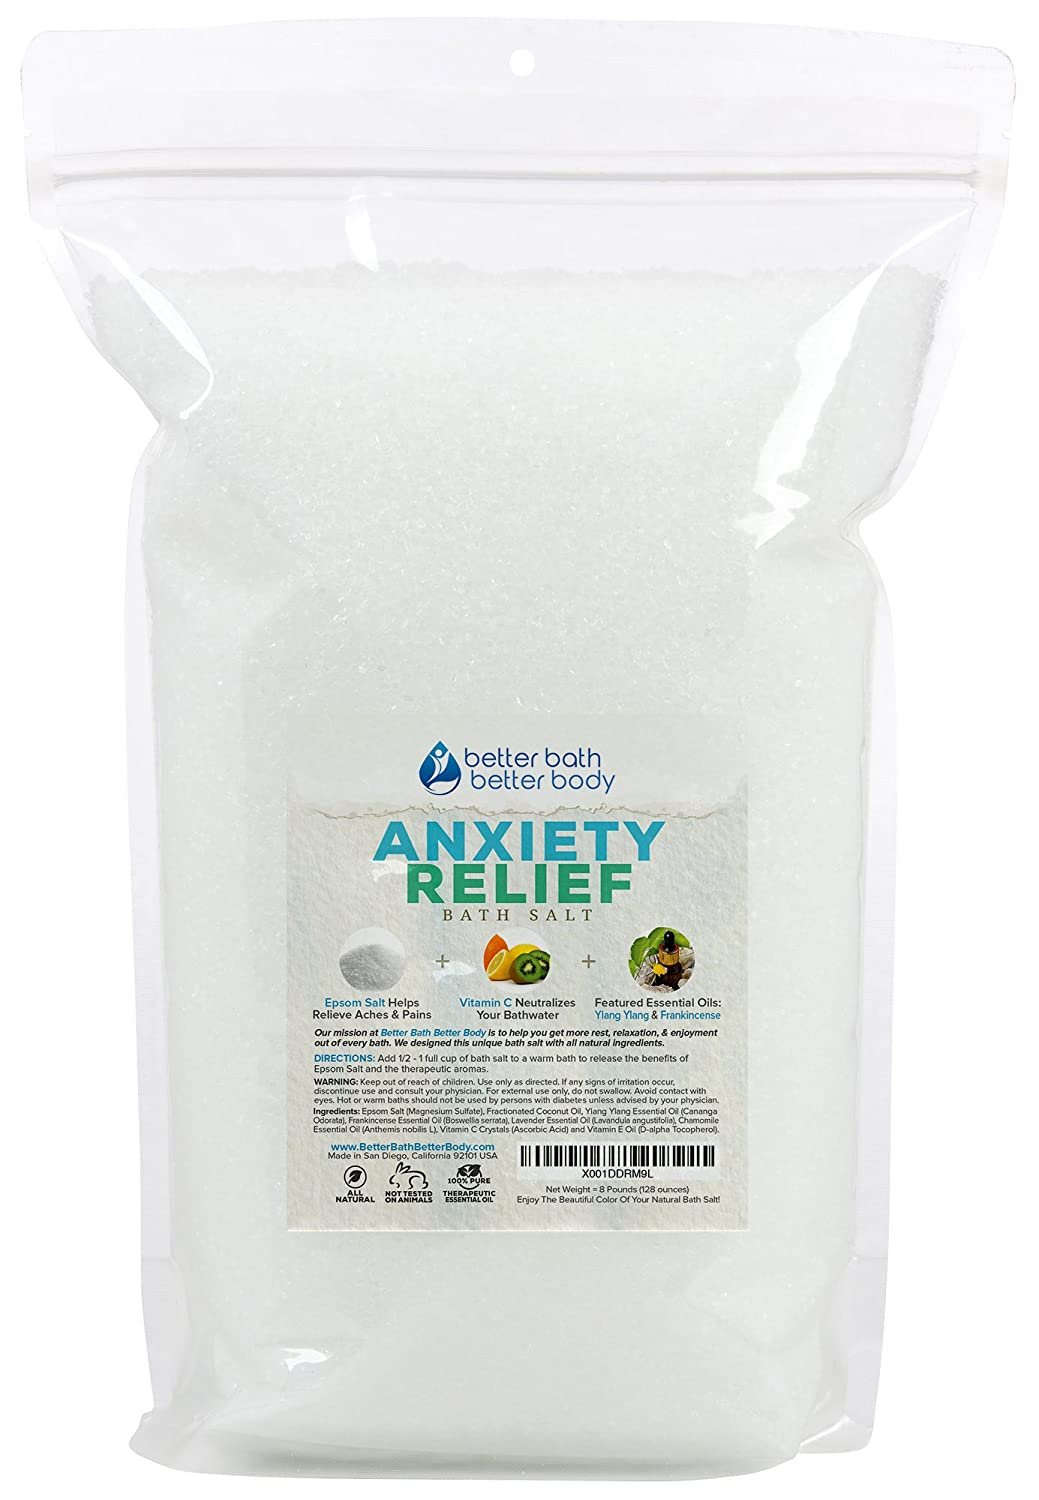 Anxiety Relief Bath Salt 32oz (2-Lbs) Epsom Salt With Ylang Ylang & Frankincese Essential Oils Plus Vitamin C All Natural Ingredients - Destress, Relax, Relieve Tension Bath Soak Better Bath Better Body